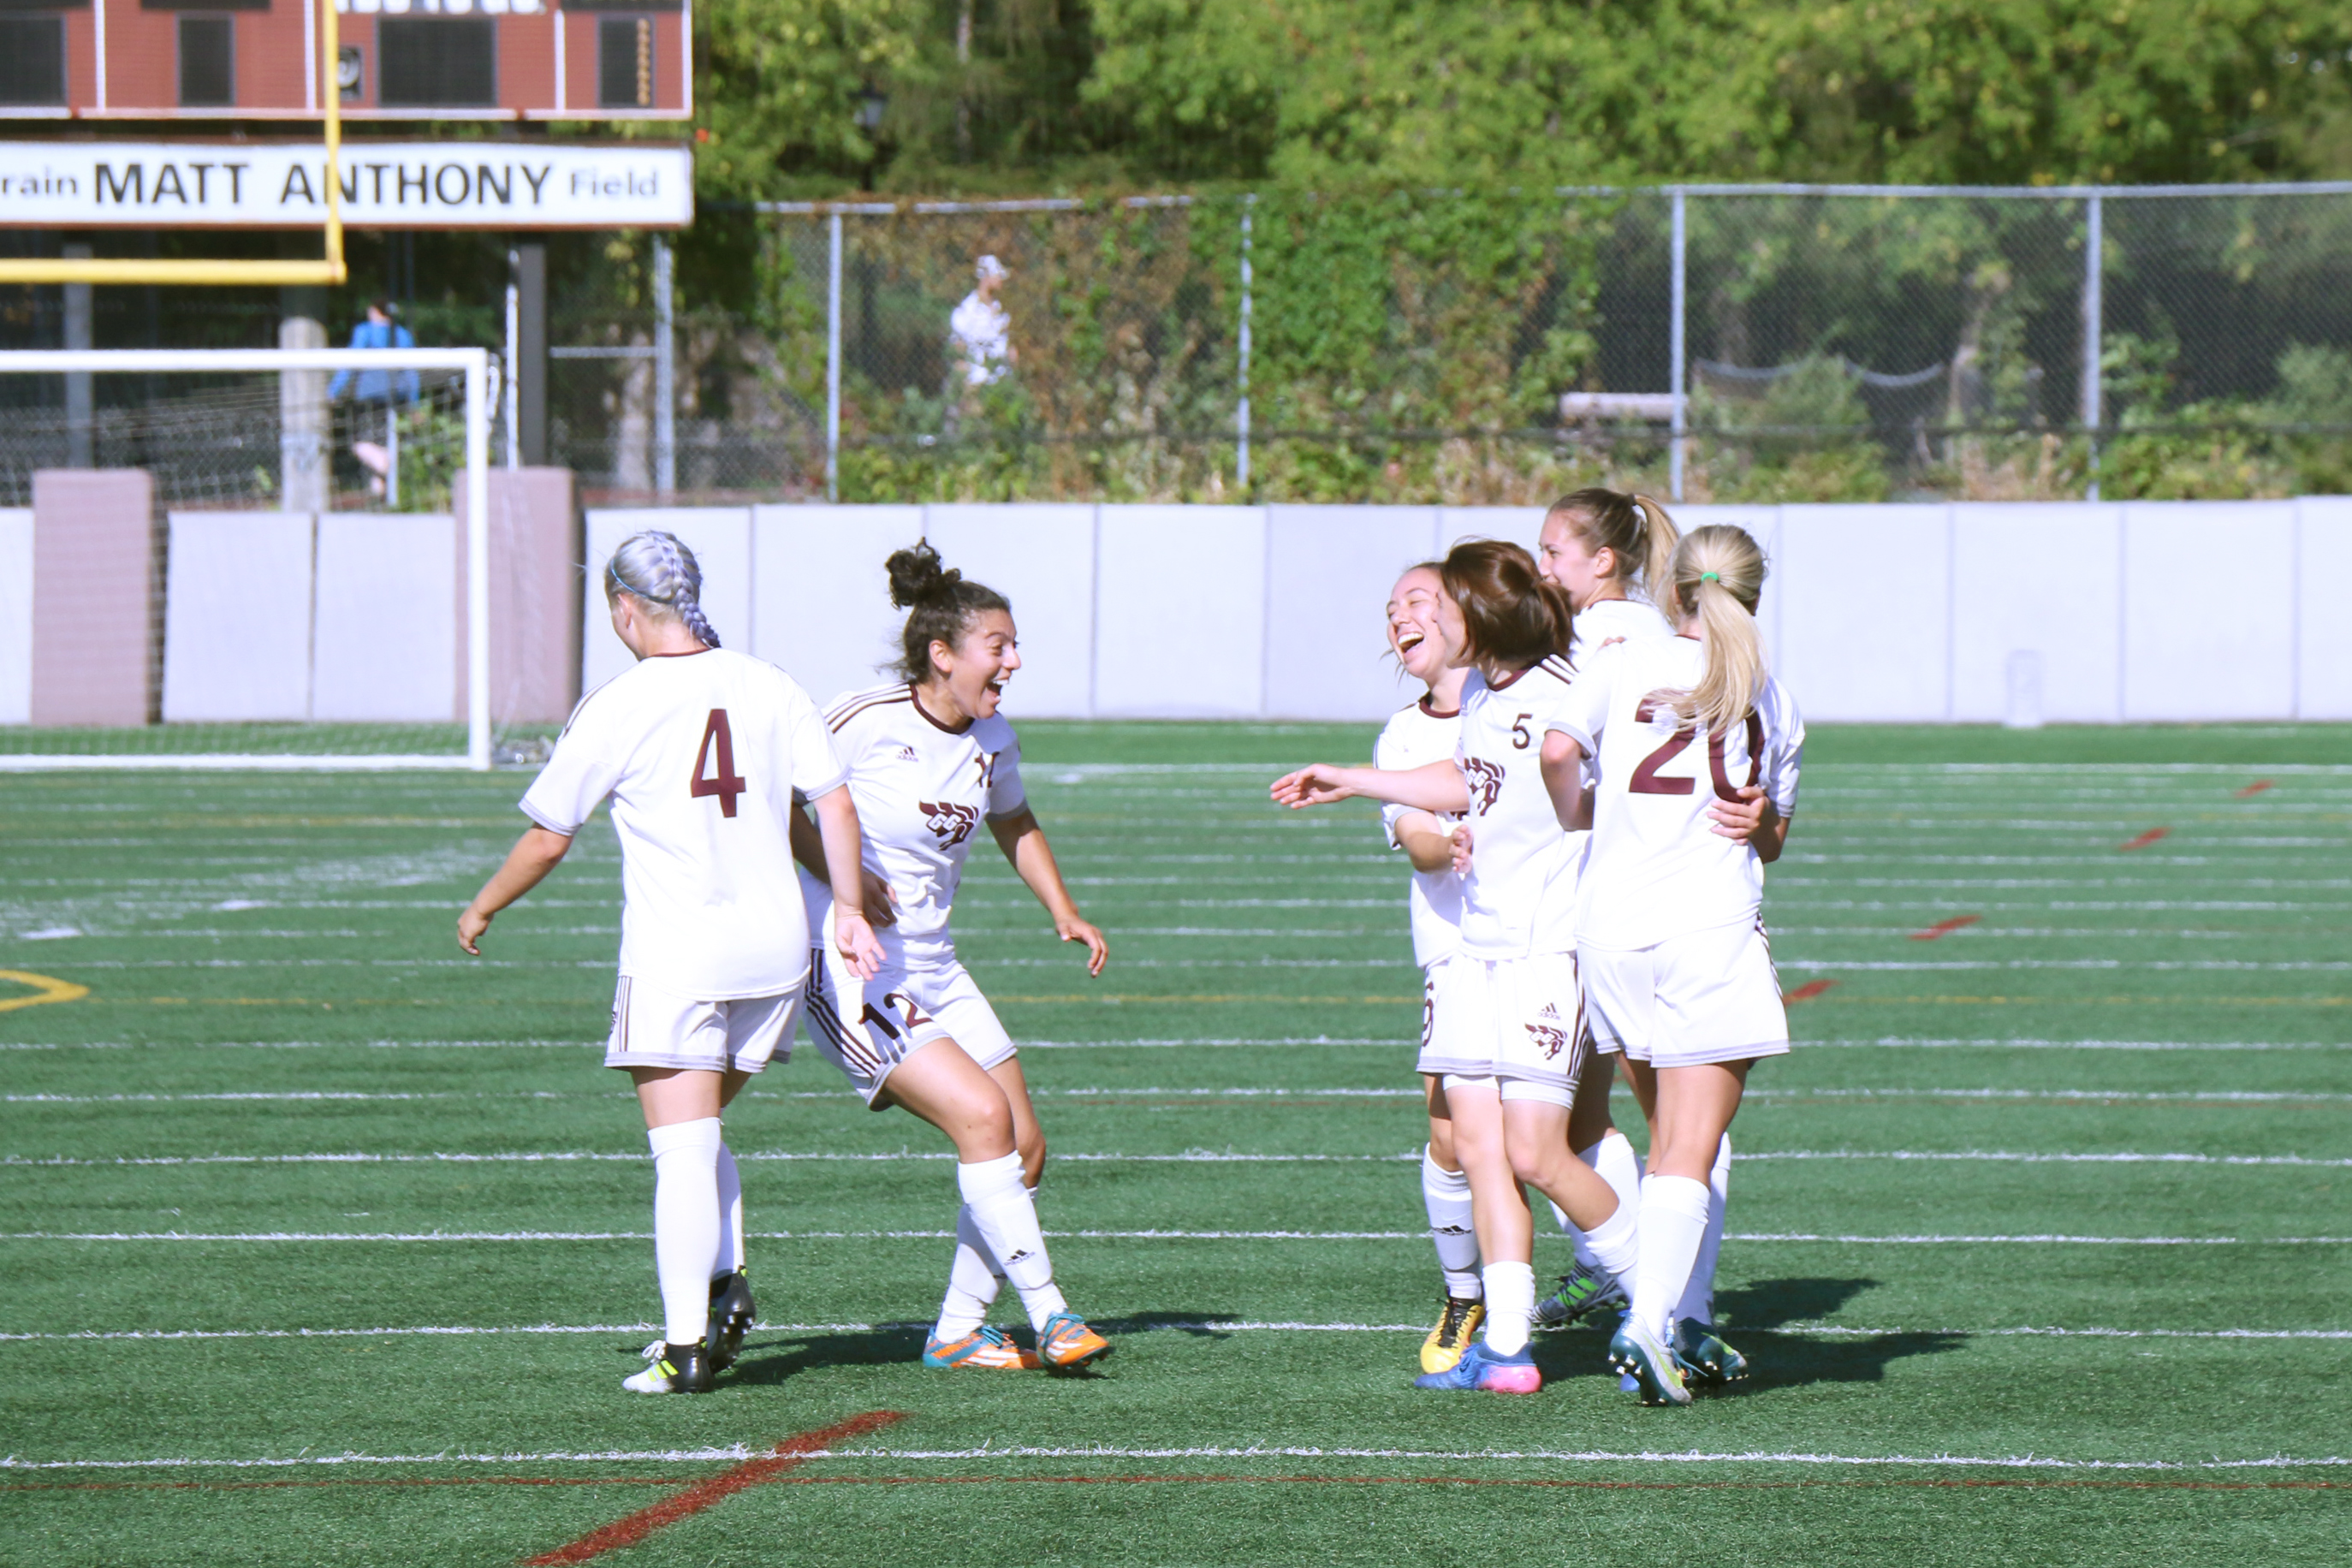 Sports_Womens Soccer_cred_Eric Davidson